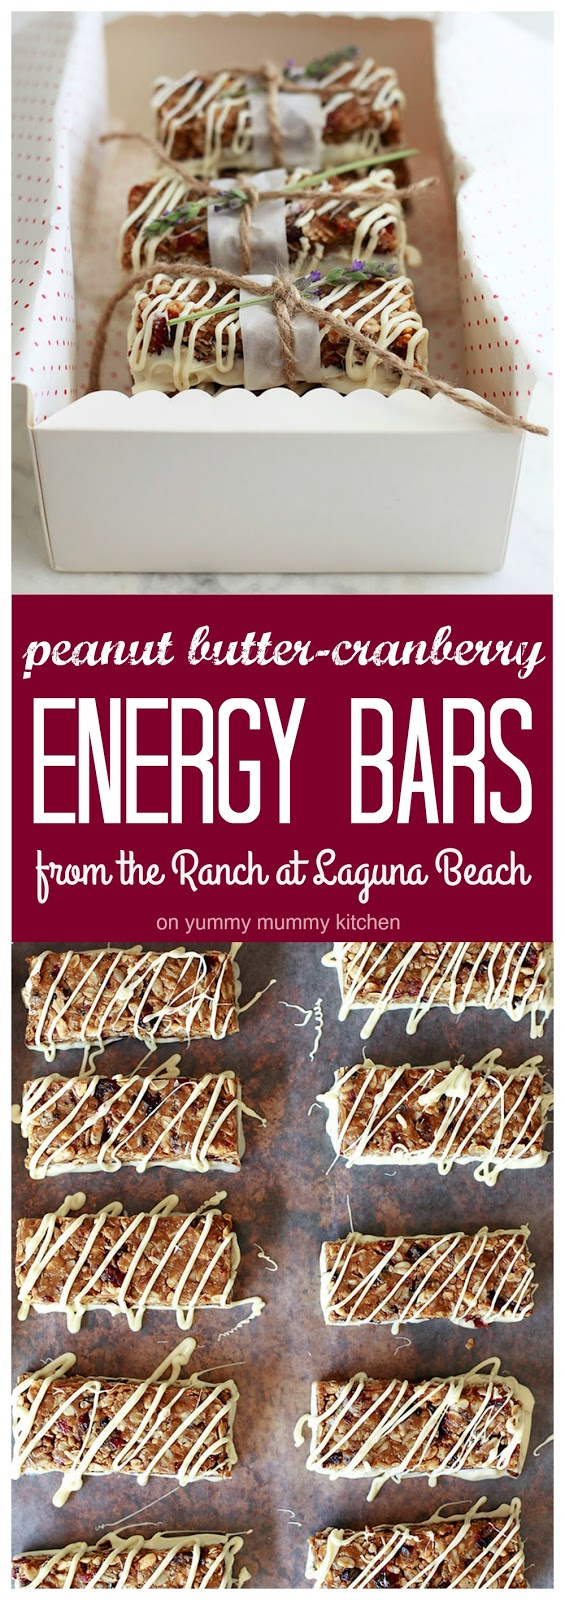 Peanut Butter Cranberry Energy bars drizzled in white chocolate.